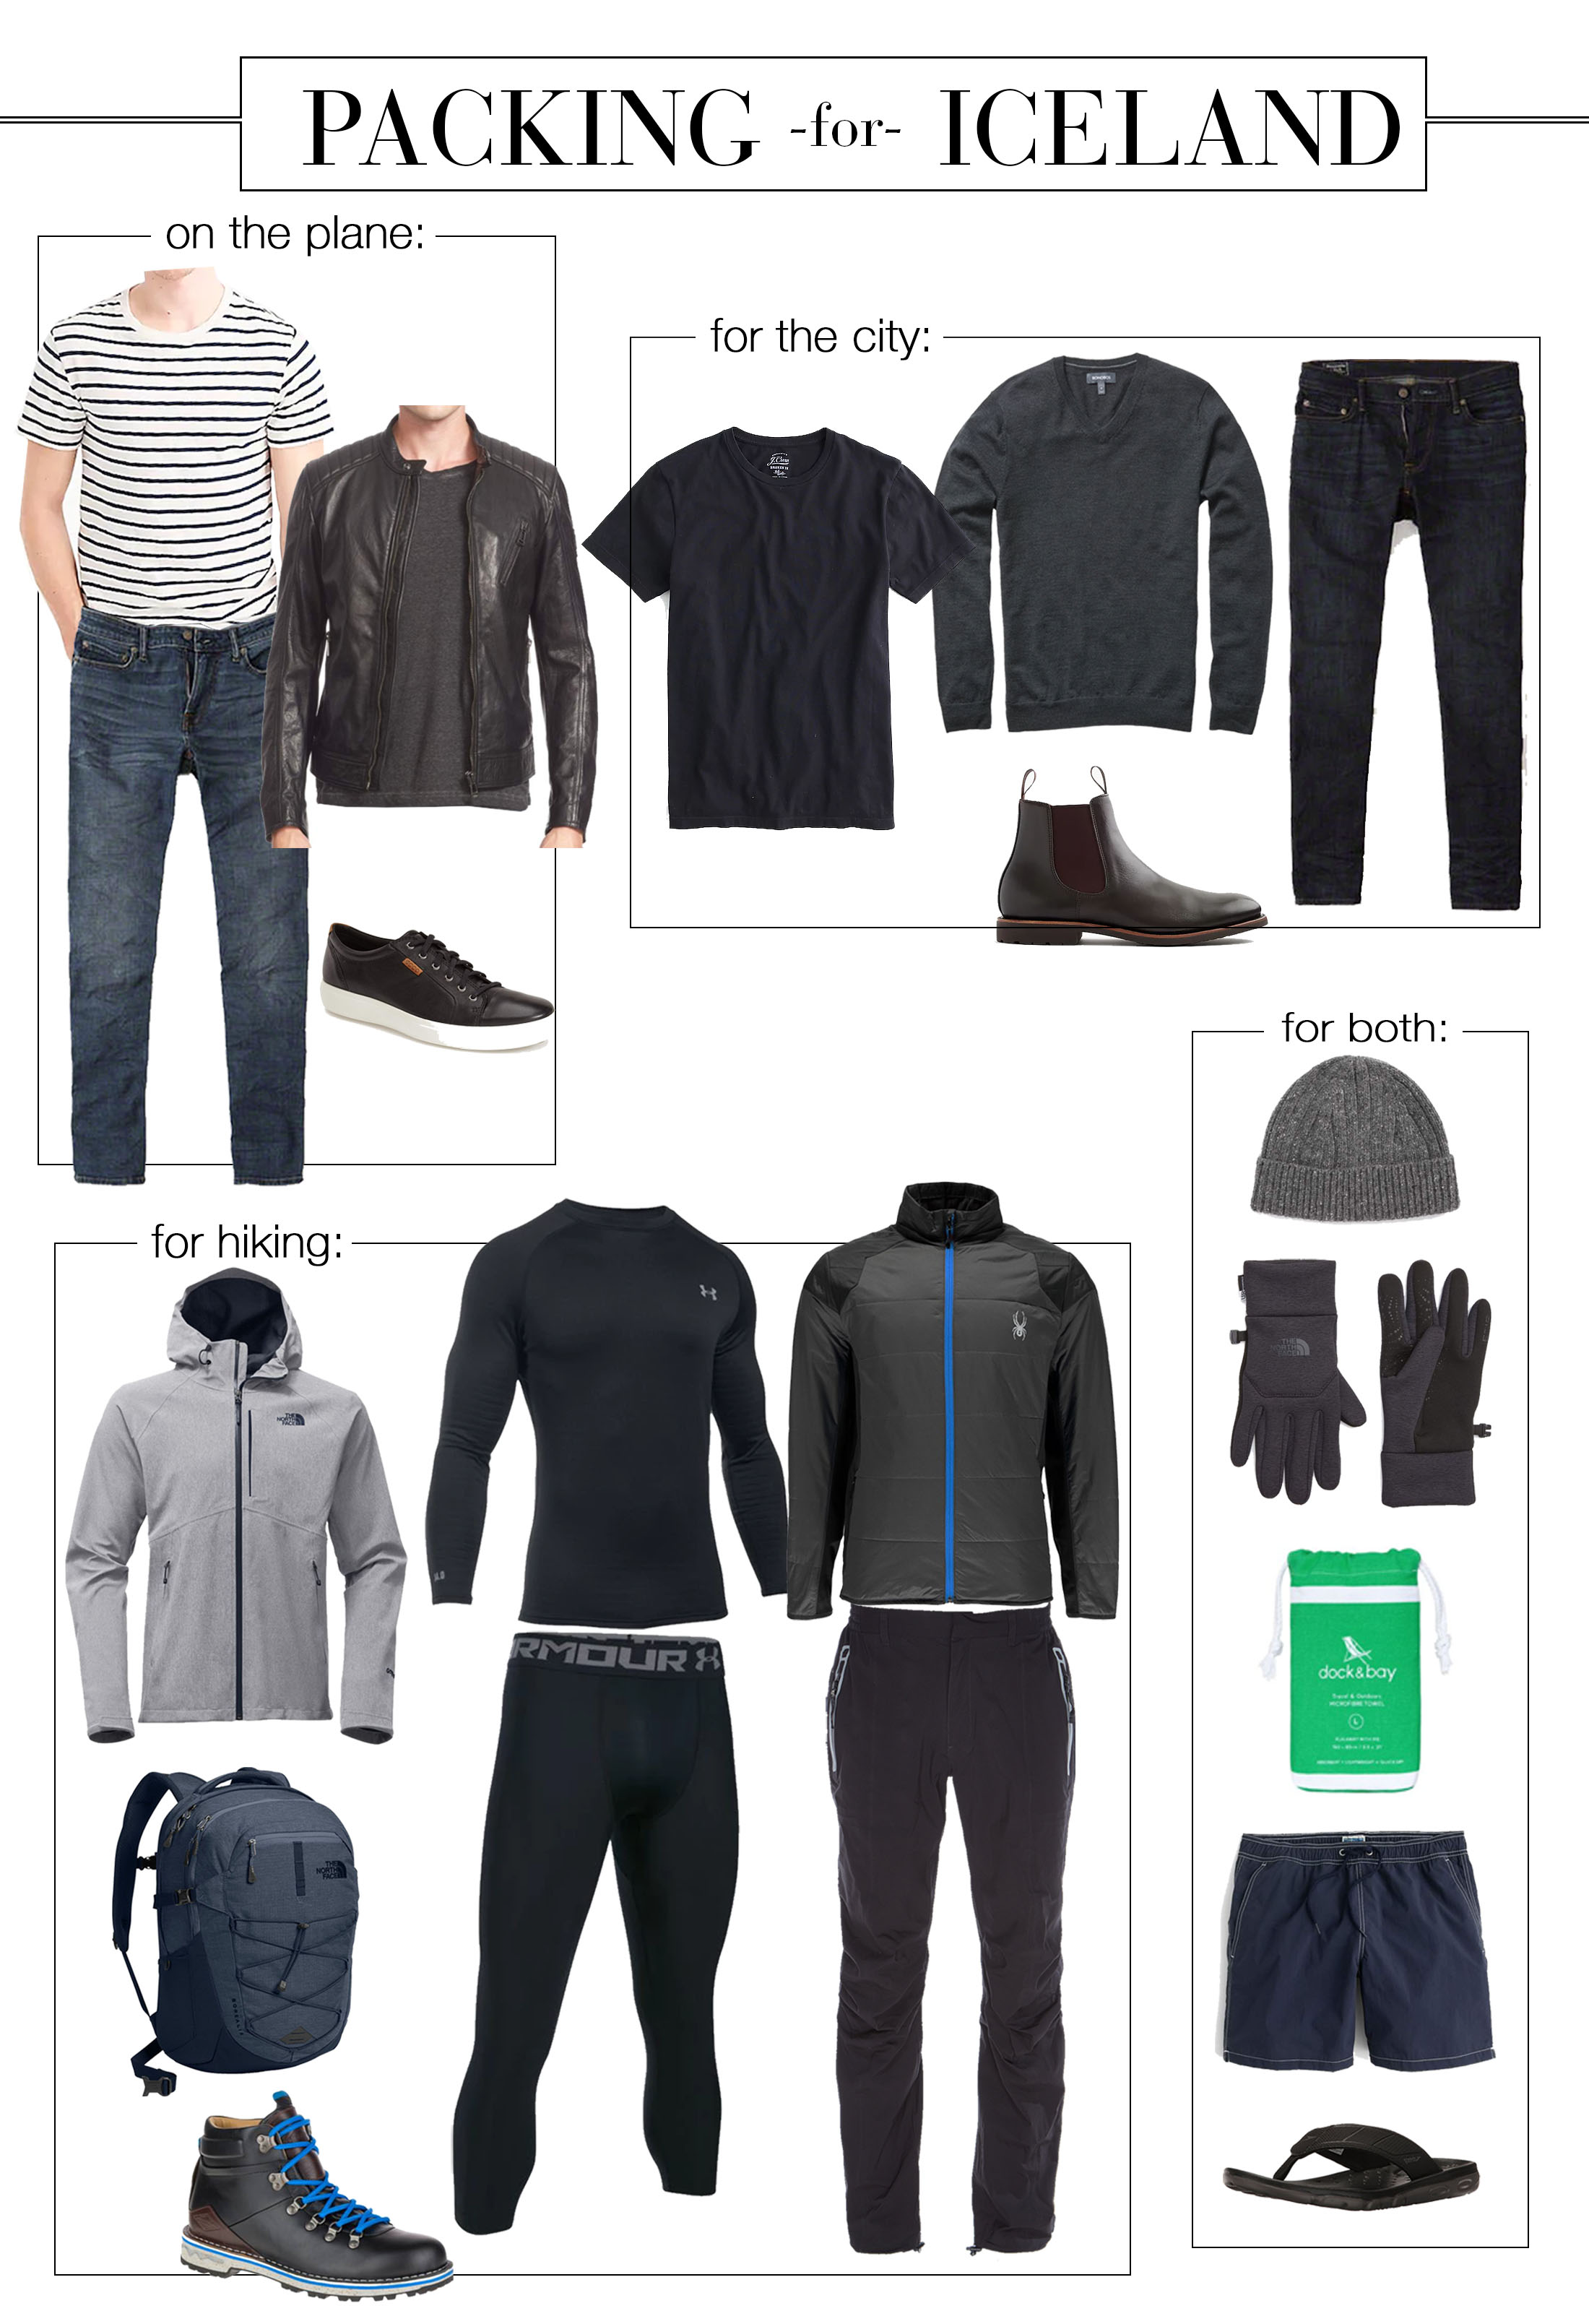 61ddec6f56c82 The Ultimate Iceland Packing Guide (For the Entire Family)